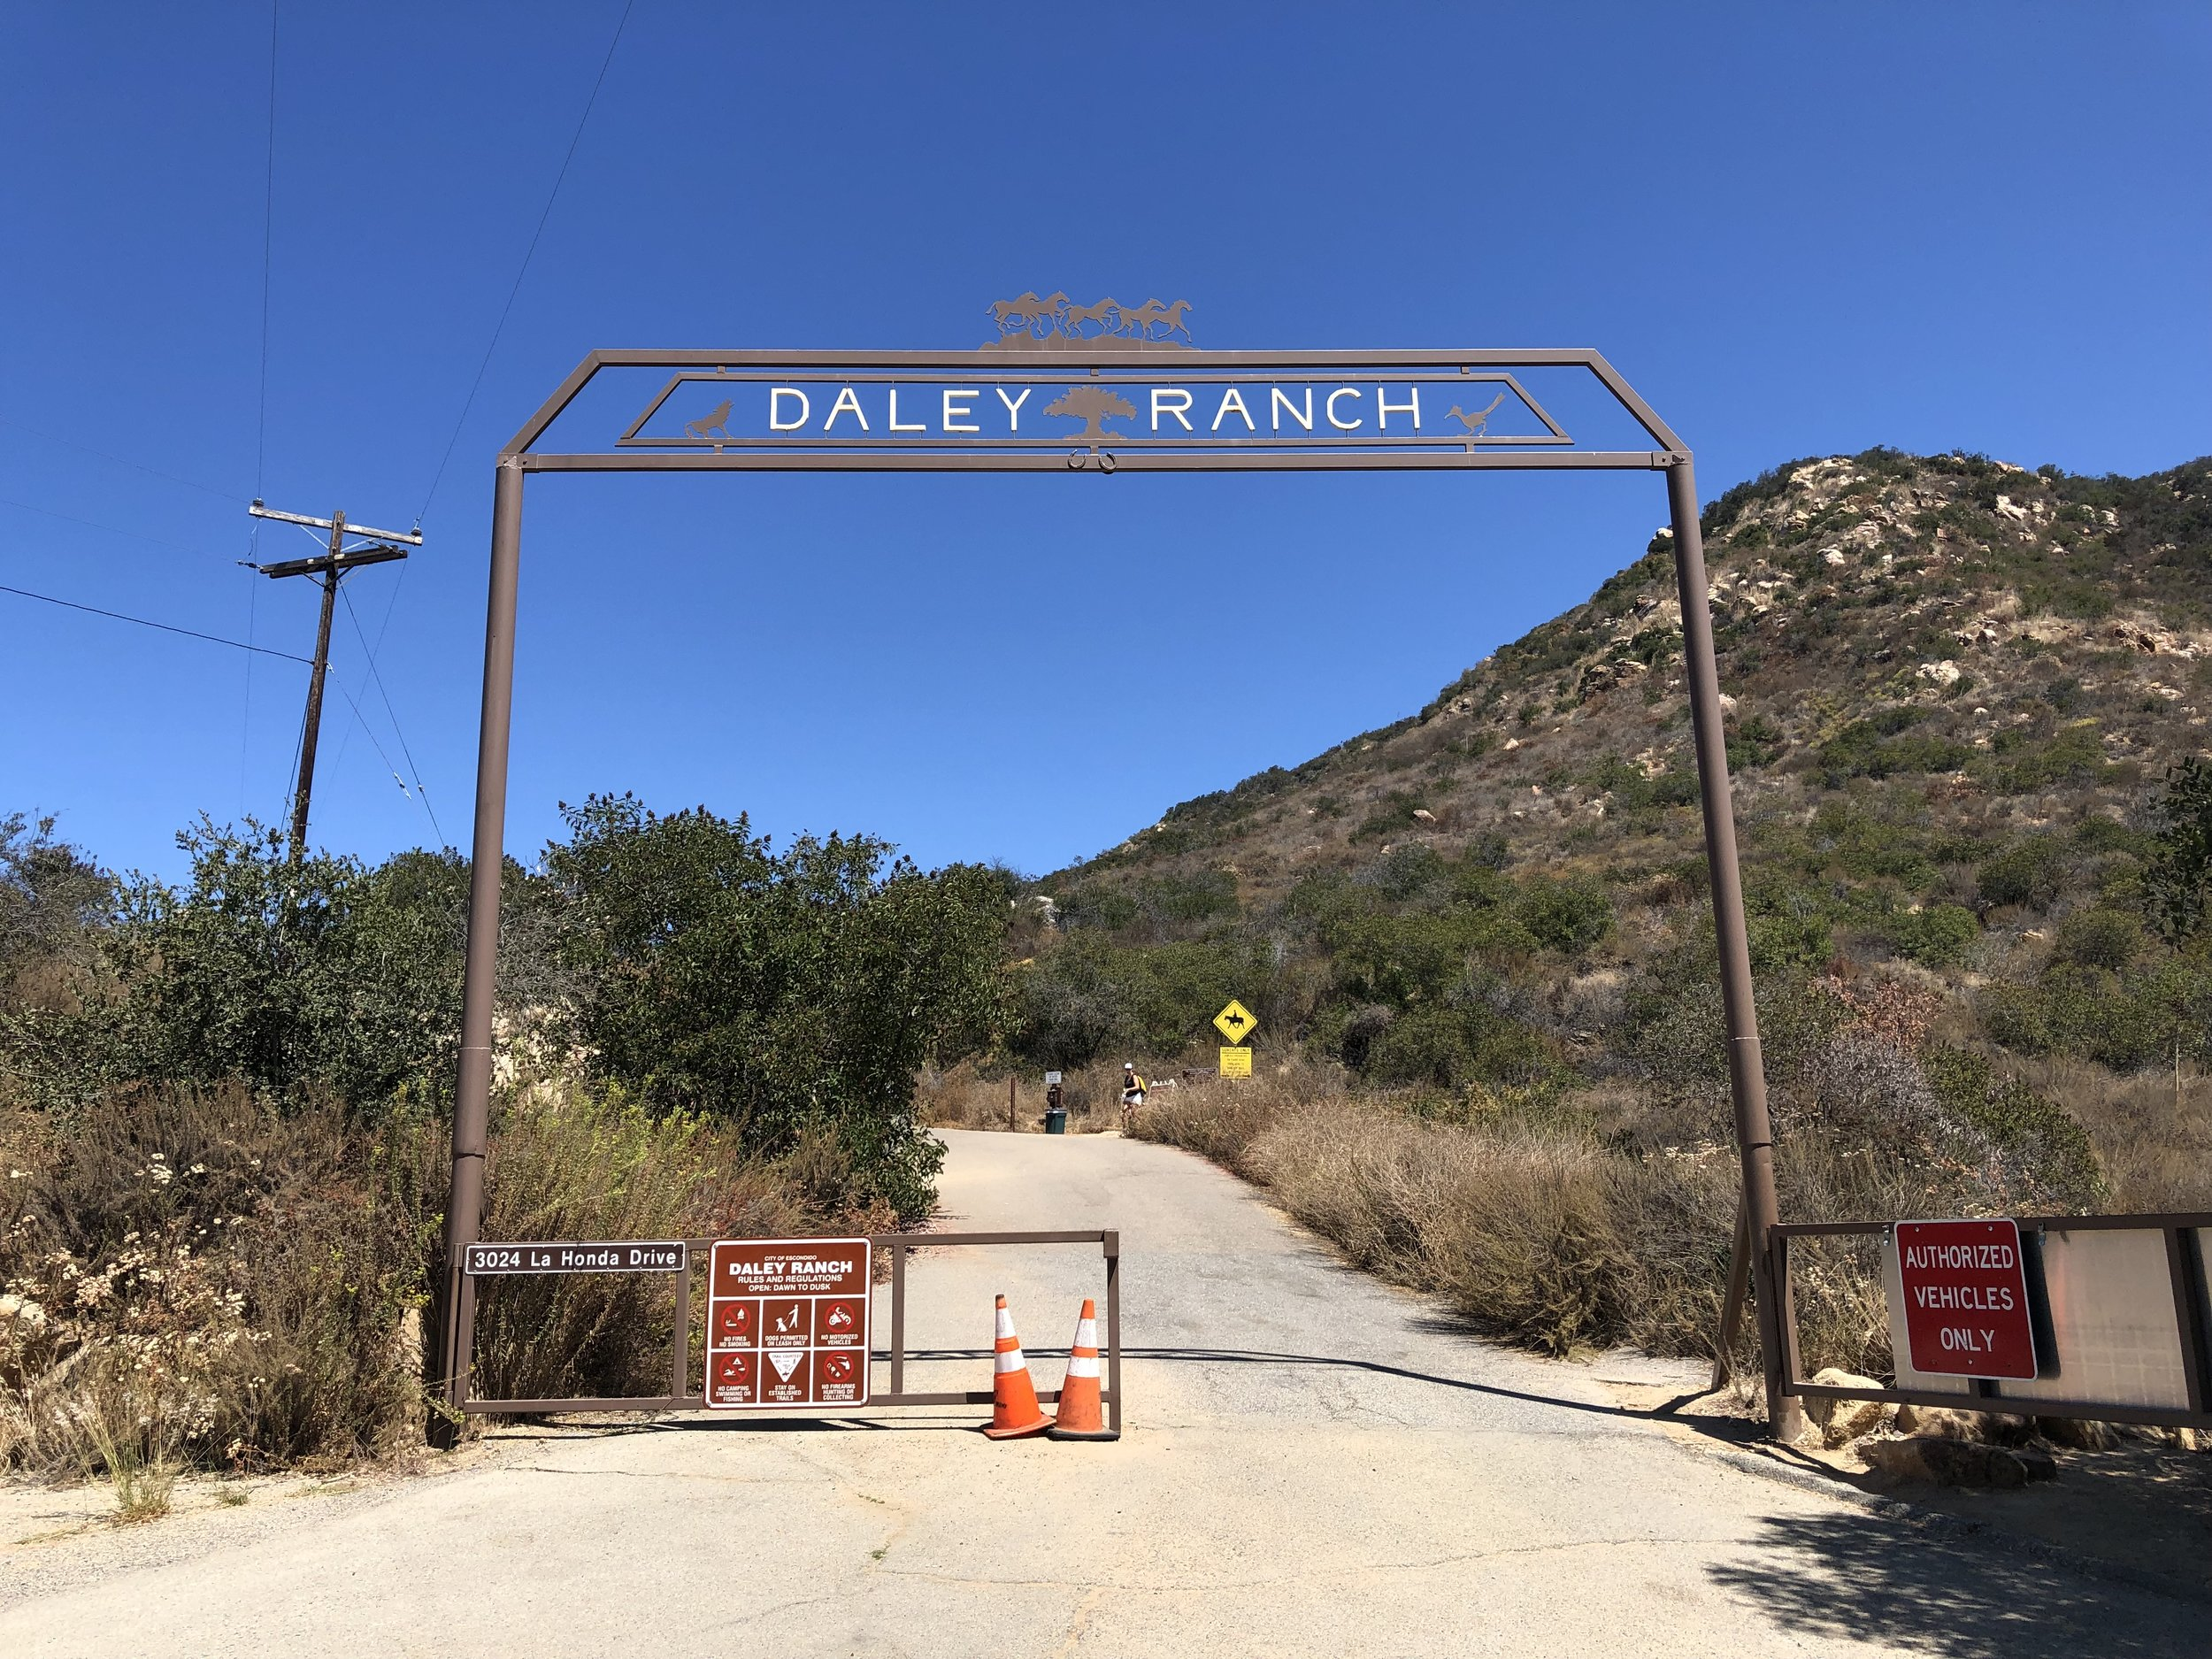 The Ranch 50k / Marathon / Half Marathon - Daley Ranch, Escondido, CAFebruary 22, 202050k - Two loop course with 6,318' of gain (1926m) Marathon - Two loop course with 5,412' of gain (1650m)Half Marathon - One loop of marathon course with 2,706' of gain (825m)